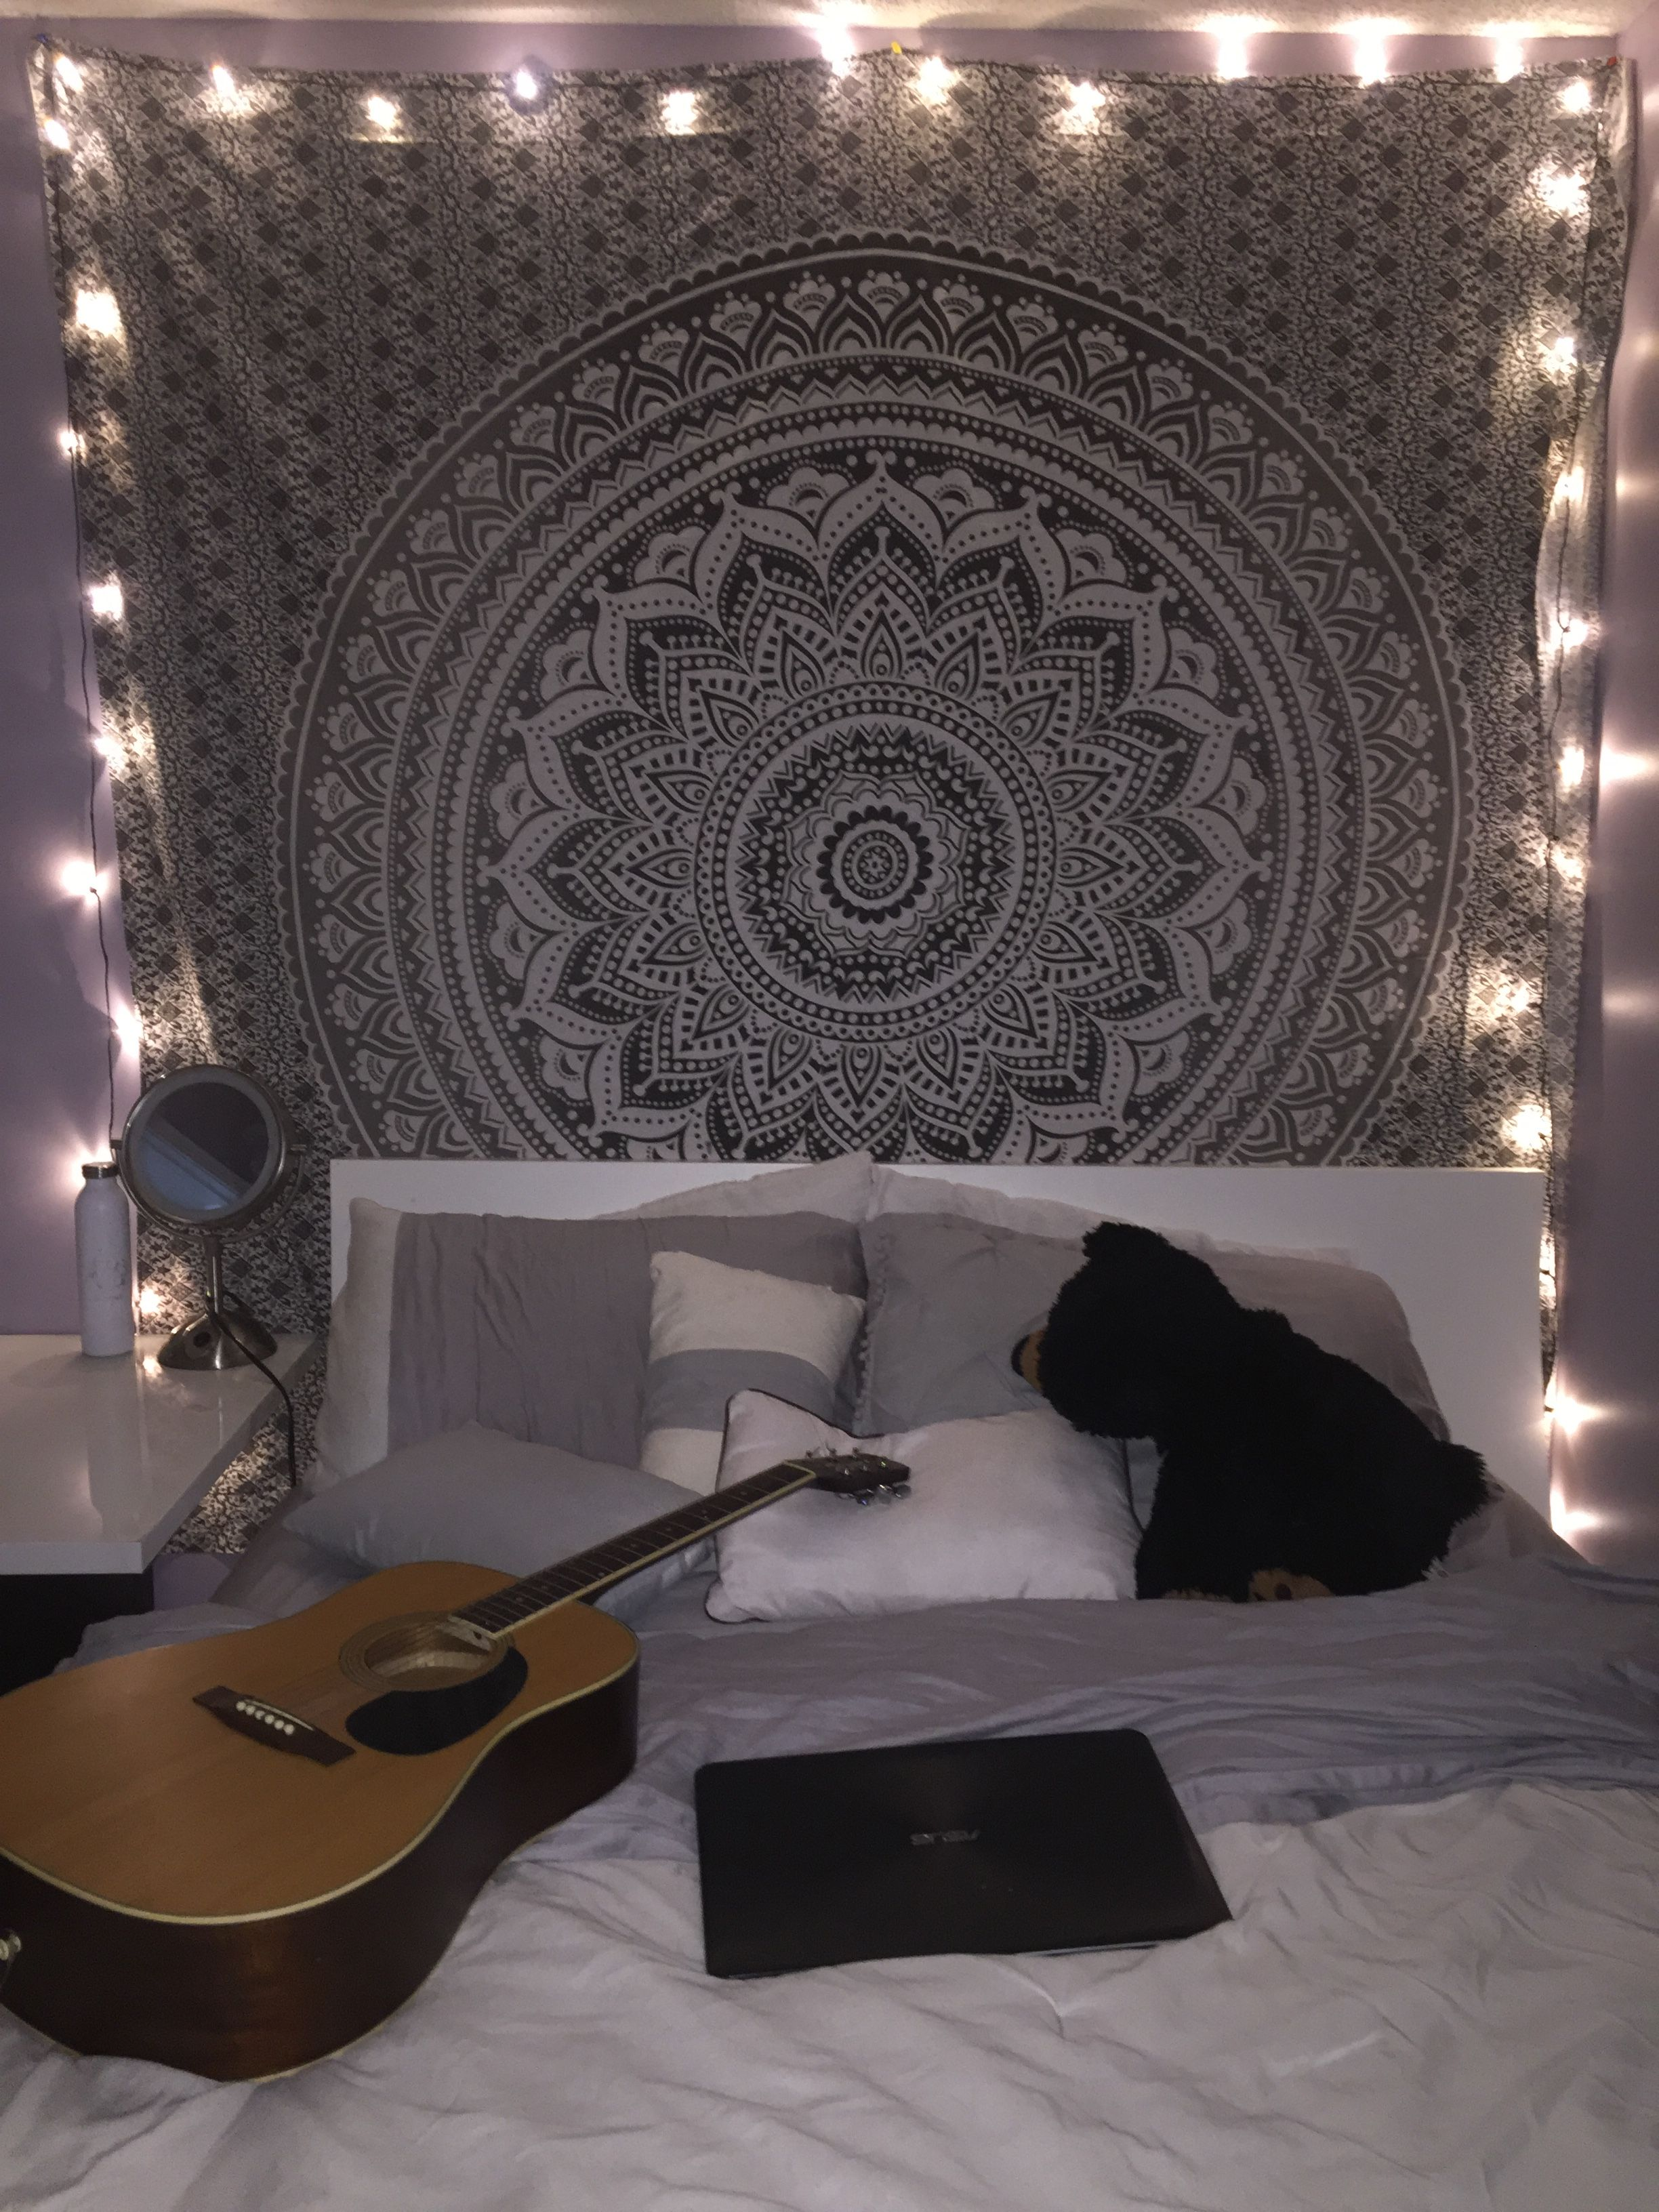 New Room Tapestry With Lights:) #room #tapestry #blacku0026white